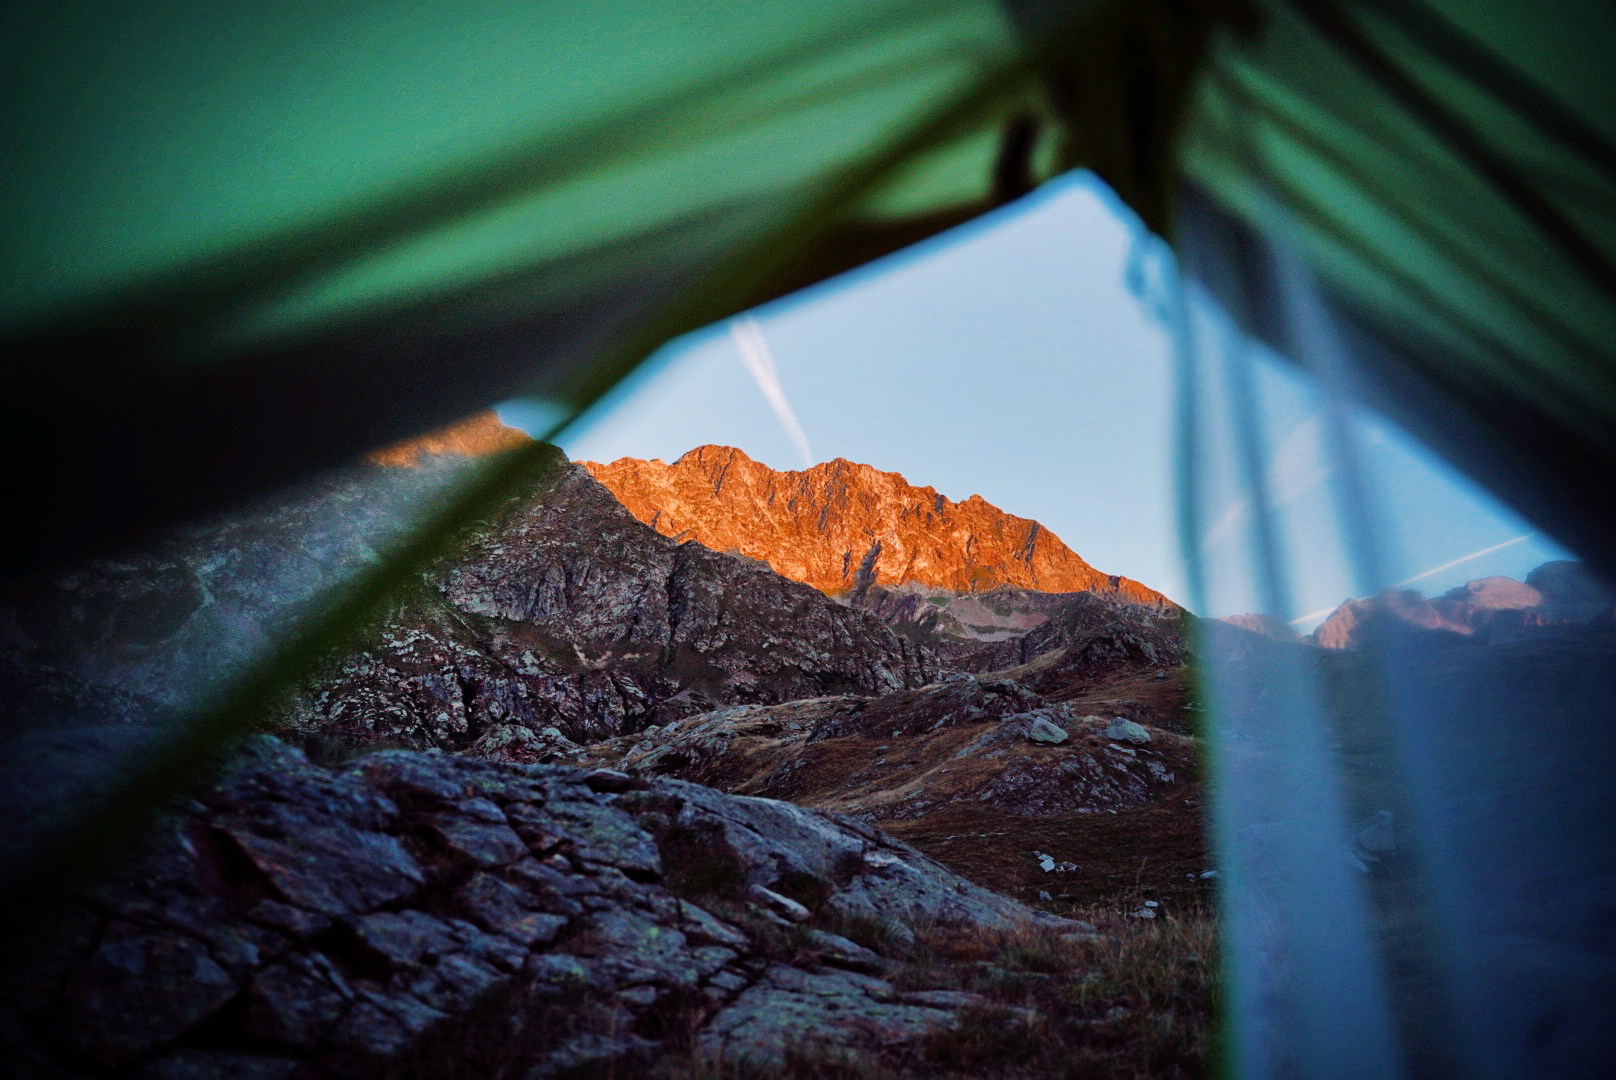 A beautiful sunrise in the mountains as seen from a tent.